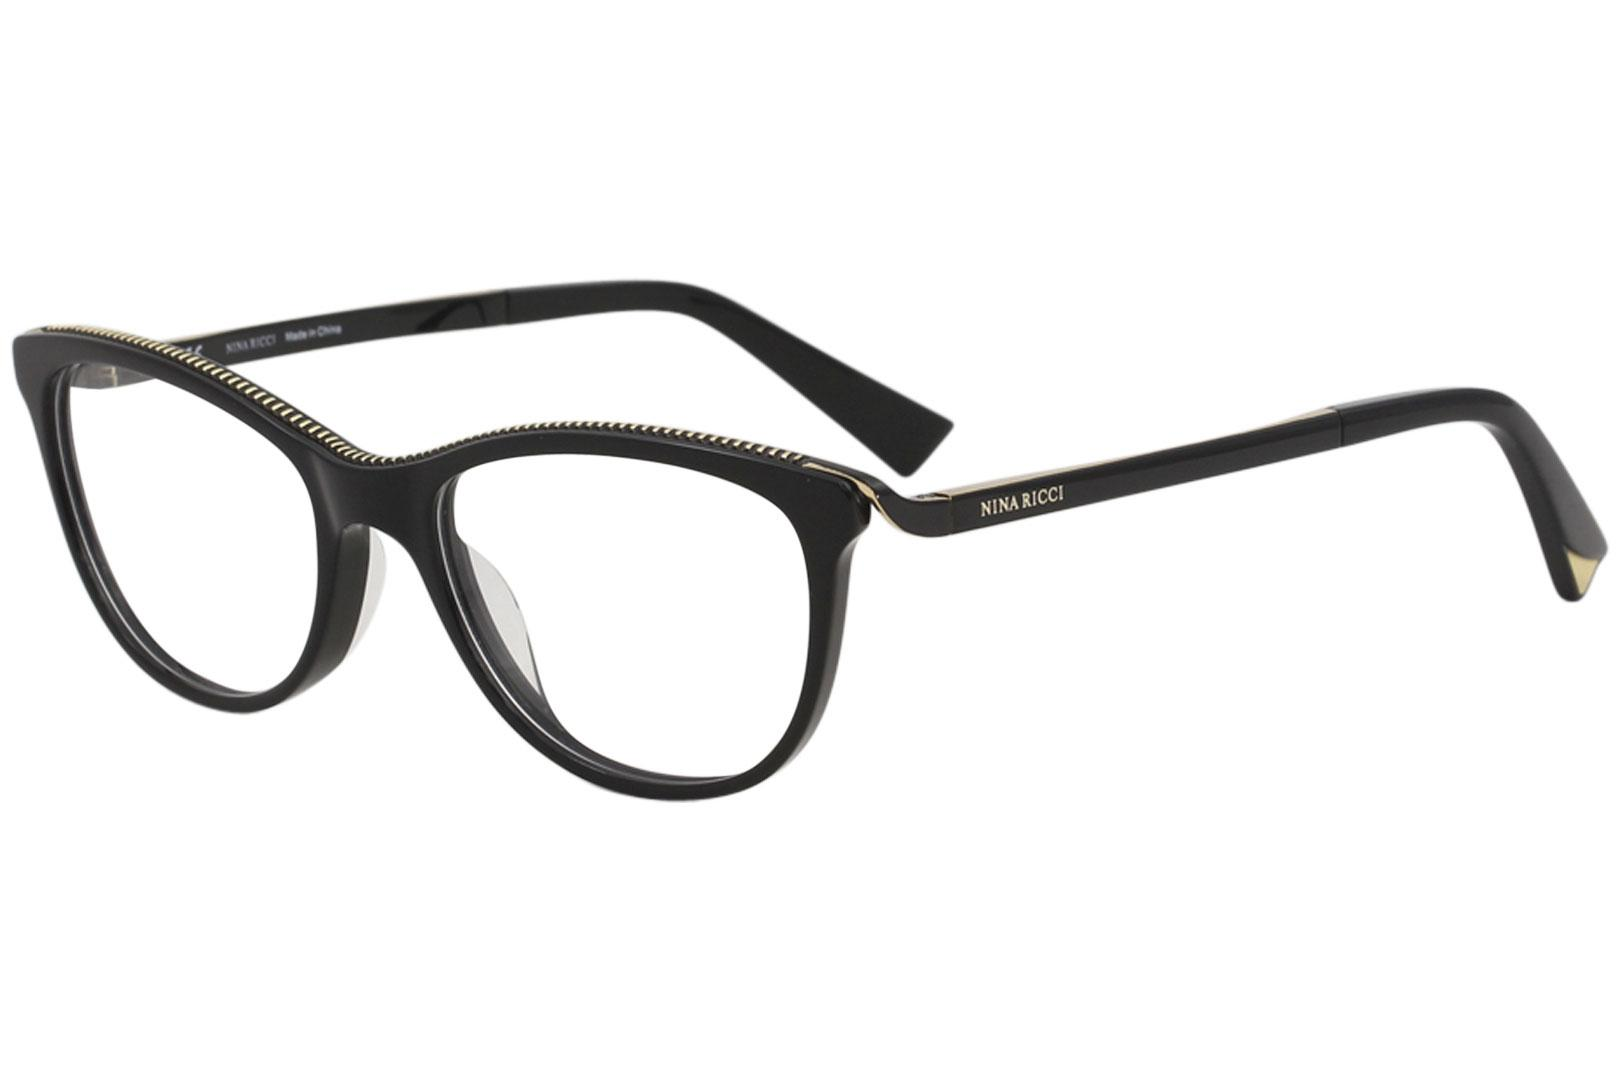 Image of Nina Ricci Eyeglasses VNR028 VNR/028 0700 Black Full Rim Optical Frame 51mm - Black   0700 - Lens 51 Bridge 18 Temple 135mm